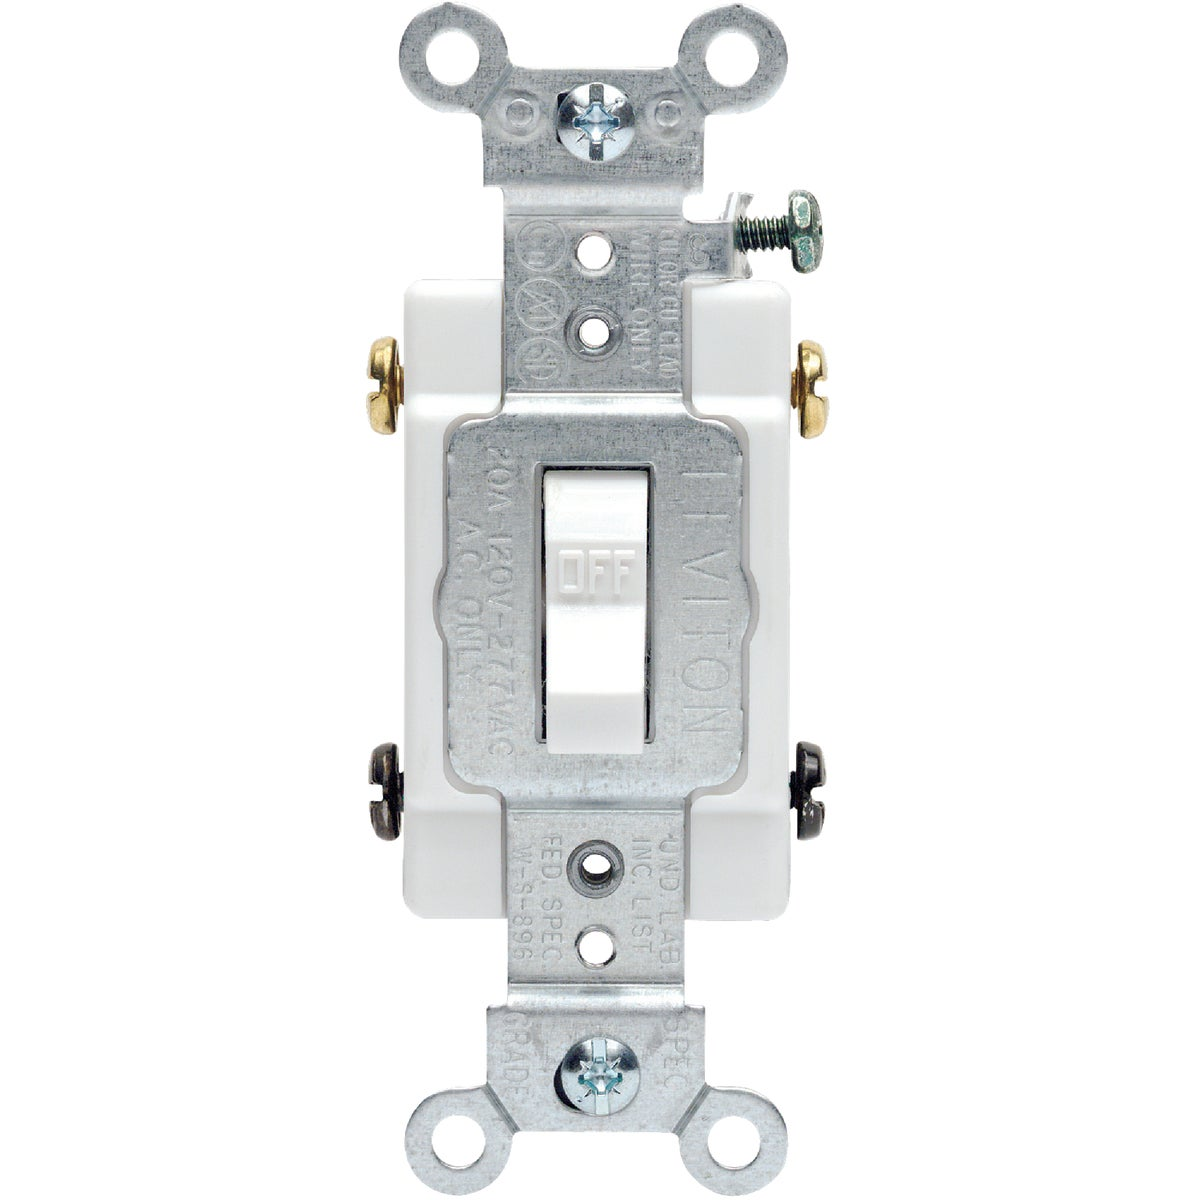 WHT 2-POLE GRND SWITCH - S04-CS220-2WS by Leviton Mfg Co